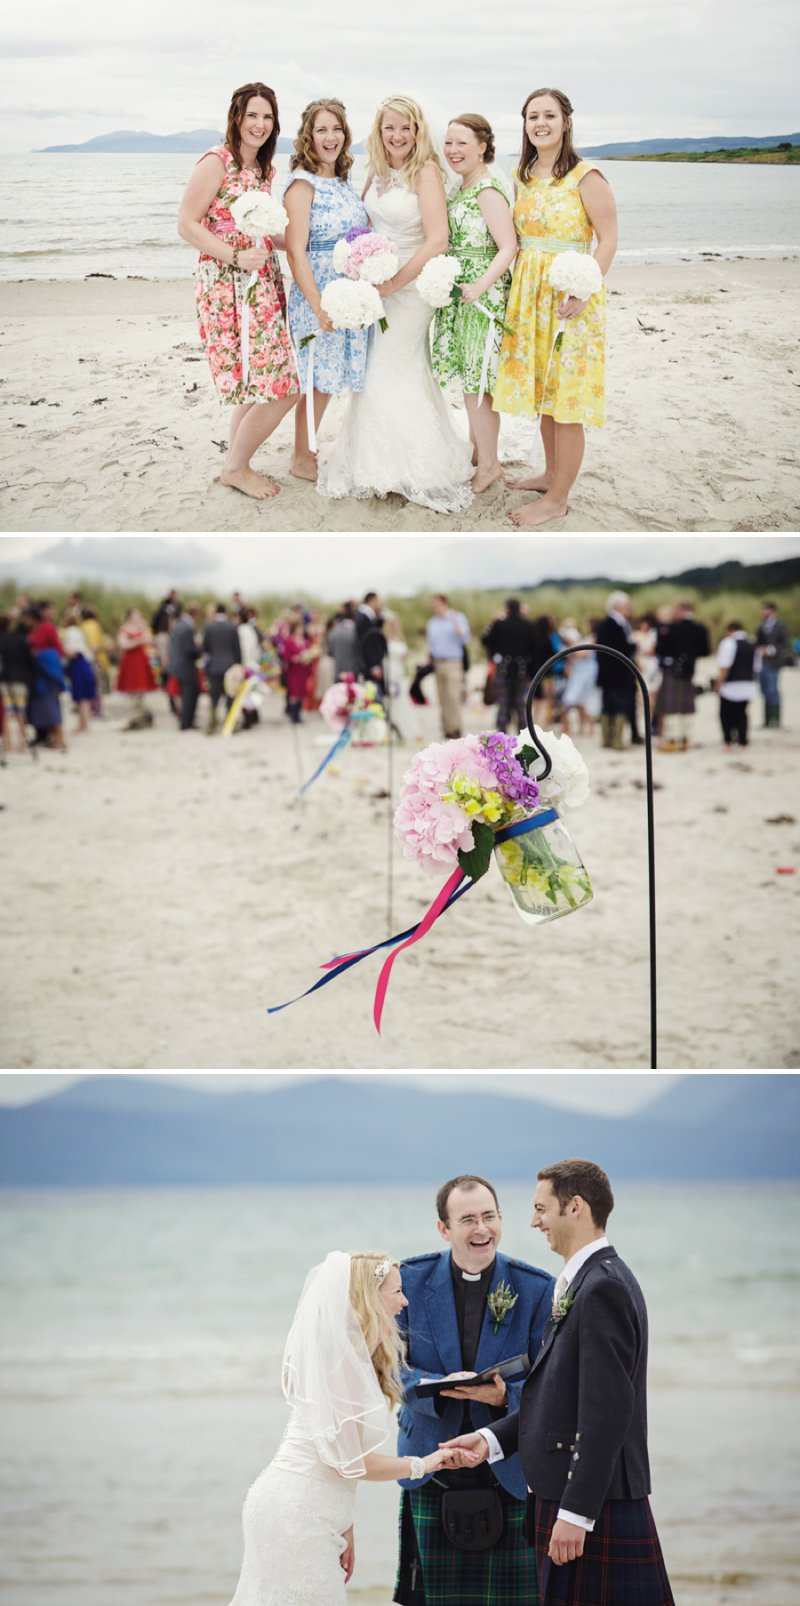 Rustic Scottish Beach Wedding With Bride In Justin Alexander And Vivien Of Holloway And Groom In Kilt With Bridesmaids In 50s Style Gowns With A Traditional Scottish Ceilidh 1 One Jolly Scottish Wedding.